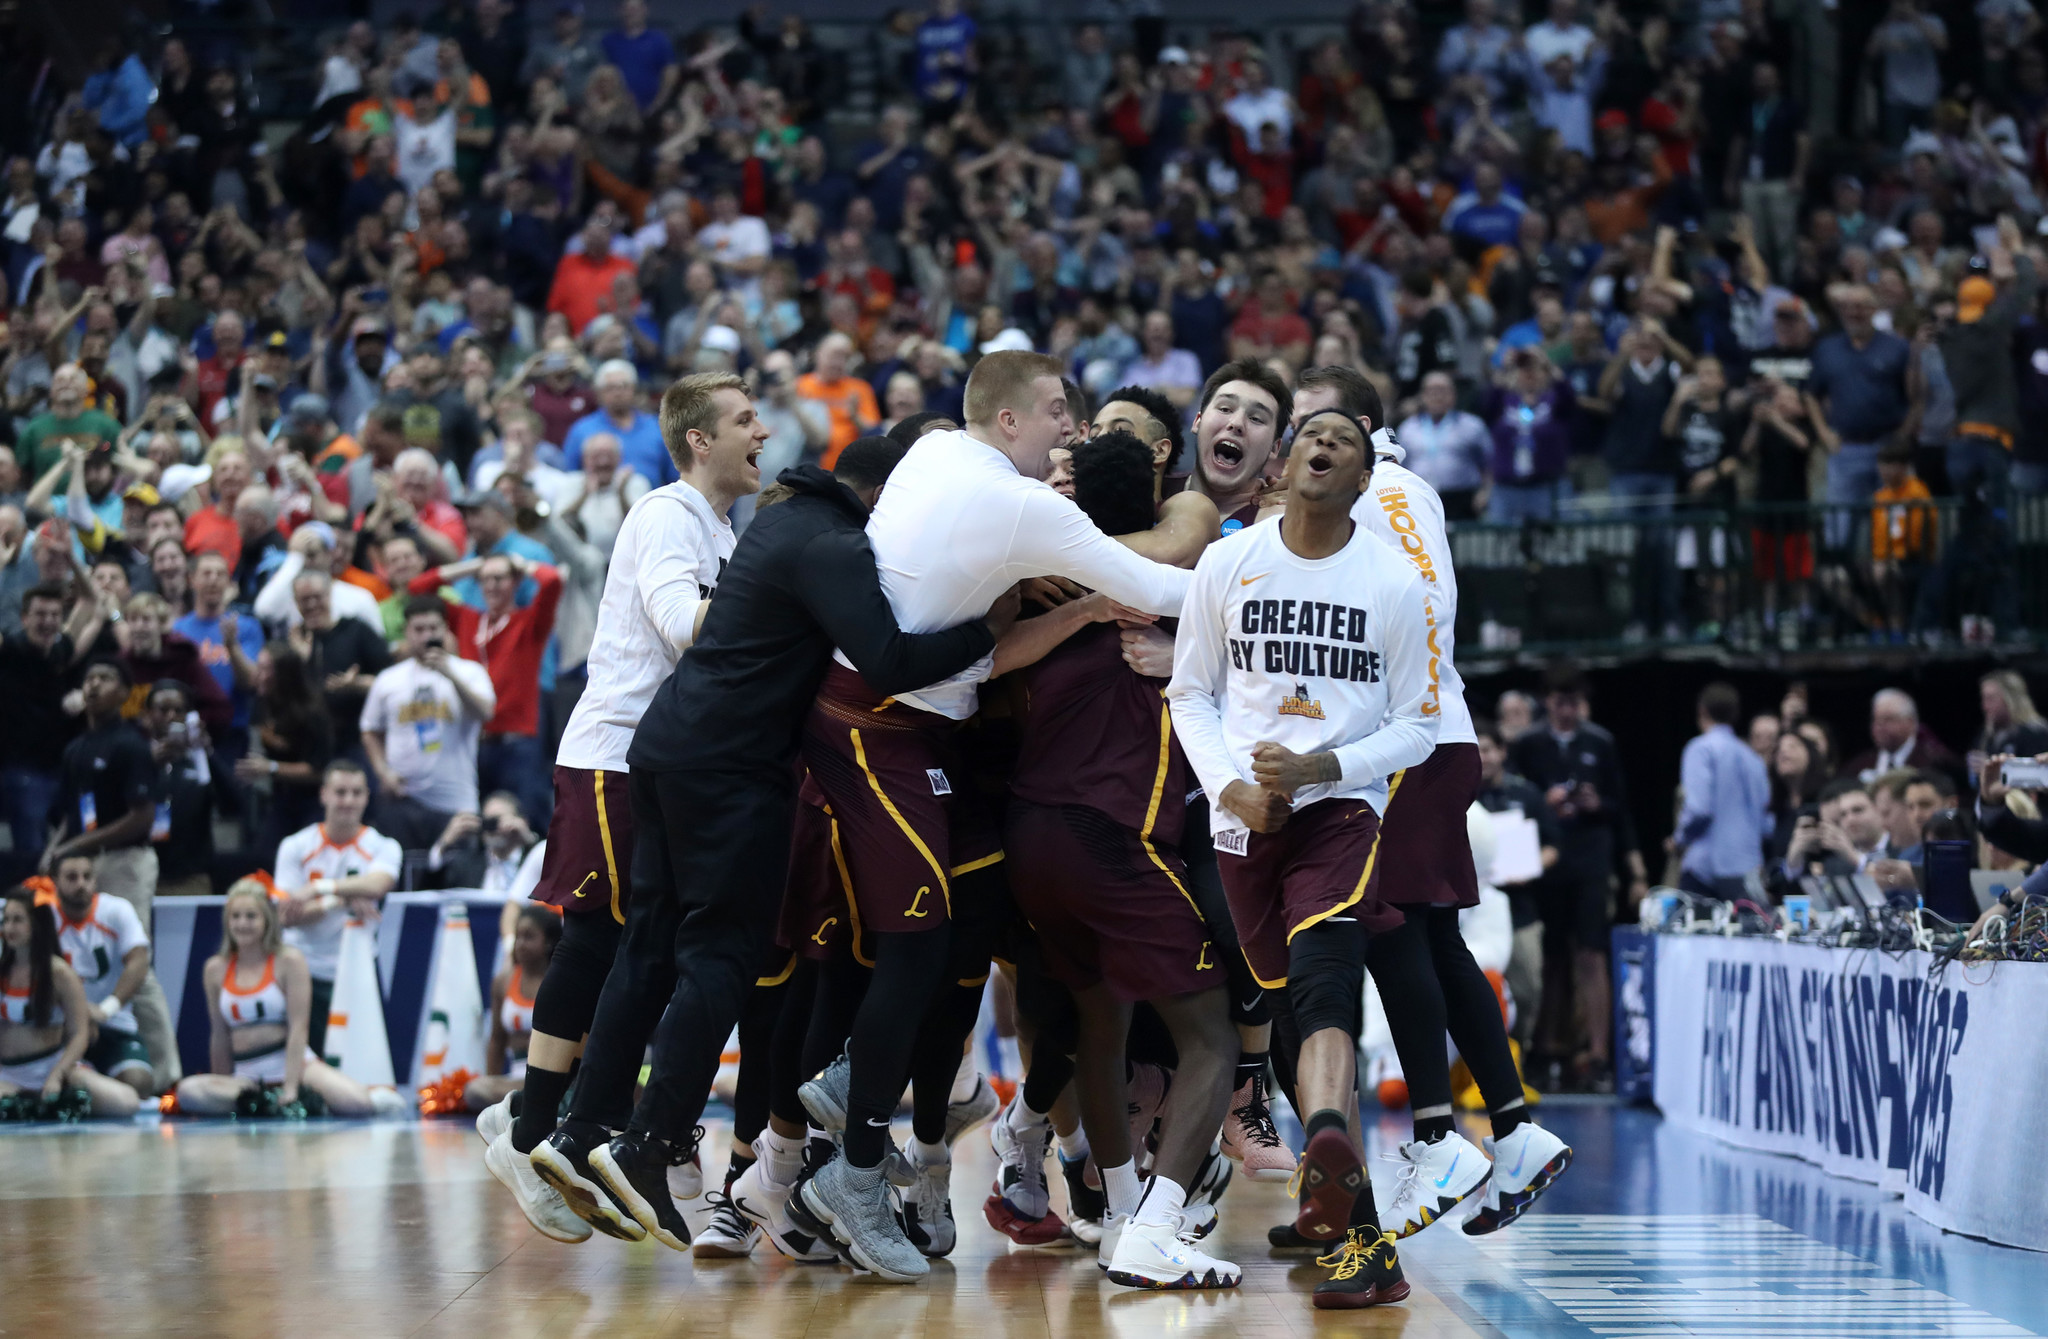 89979a36b6e0 A shot and a prayer  Donte Ingram s last-second game-winner gives Loyola  its March moment - Chicago Tribune